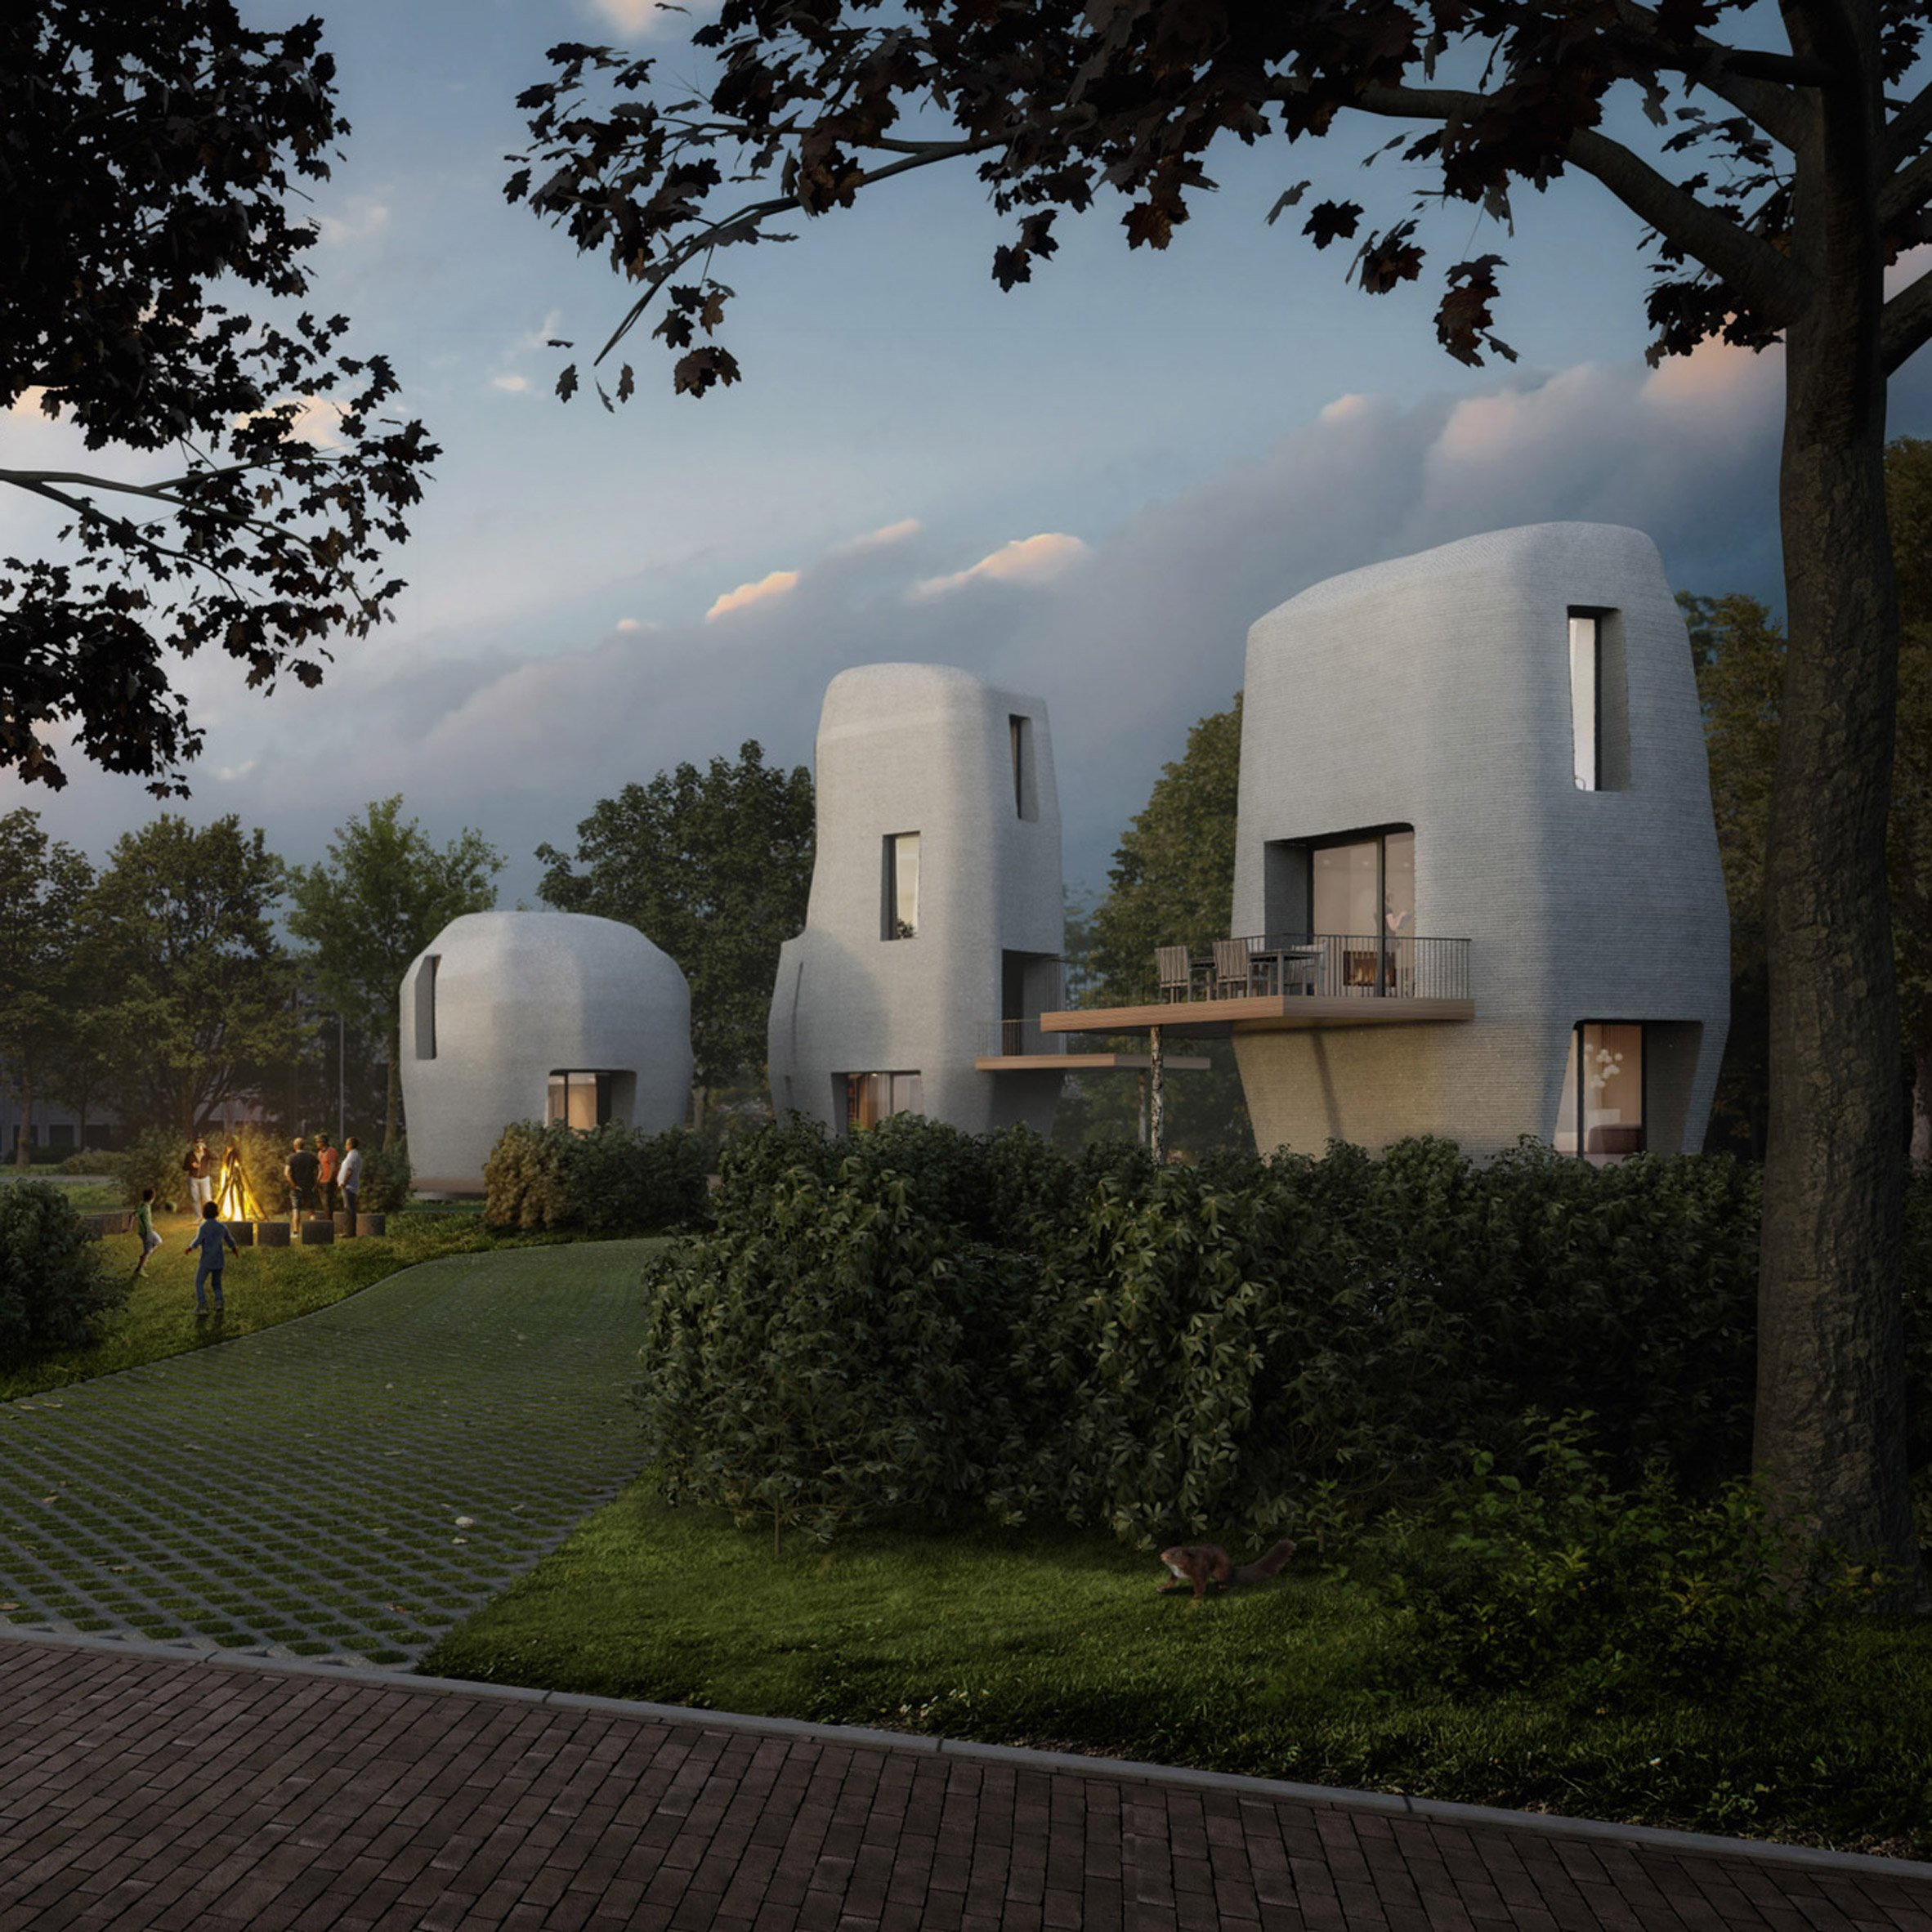 3d Printing Could Enable People To Build Their Own House At The